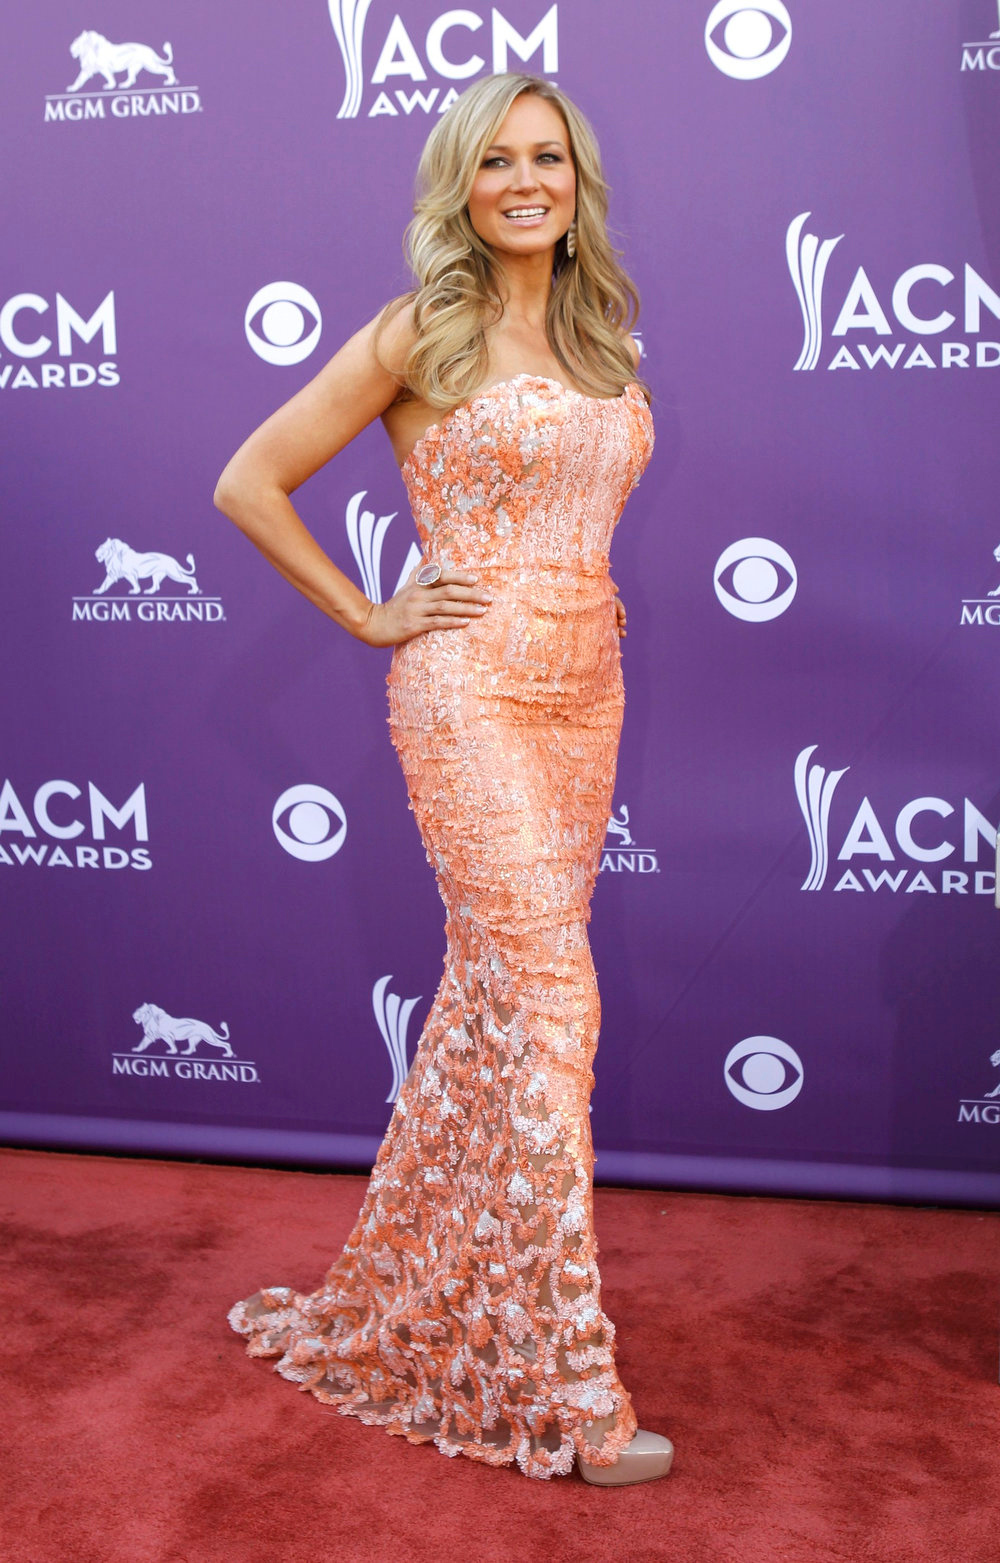 . Singer Jewel poses as she arrives at the 48th ACM Awards in Las Vegas, April 7, 2013.  REUTERS/Steve Marcus